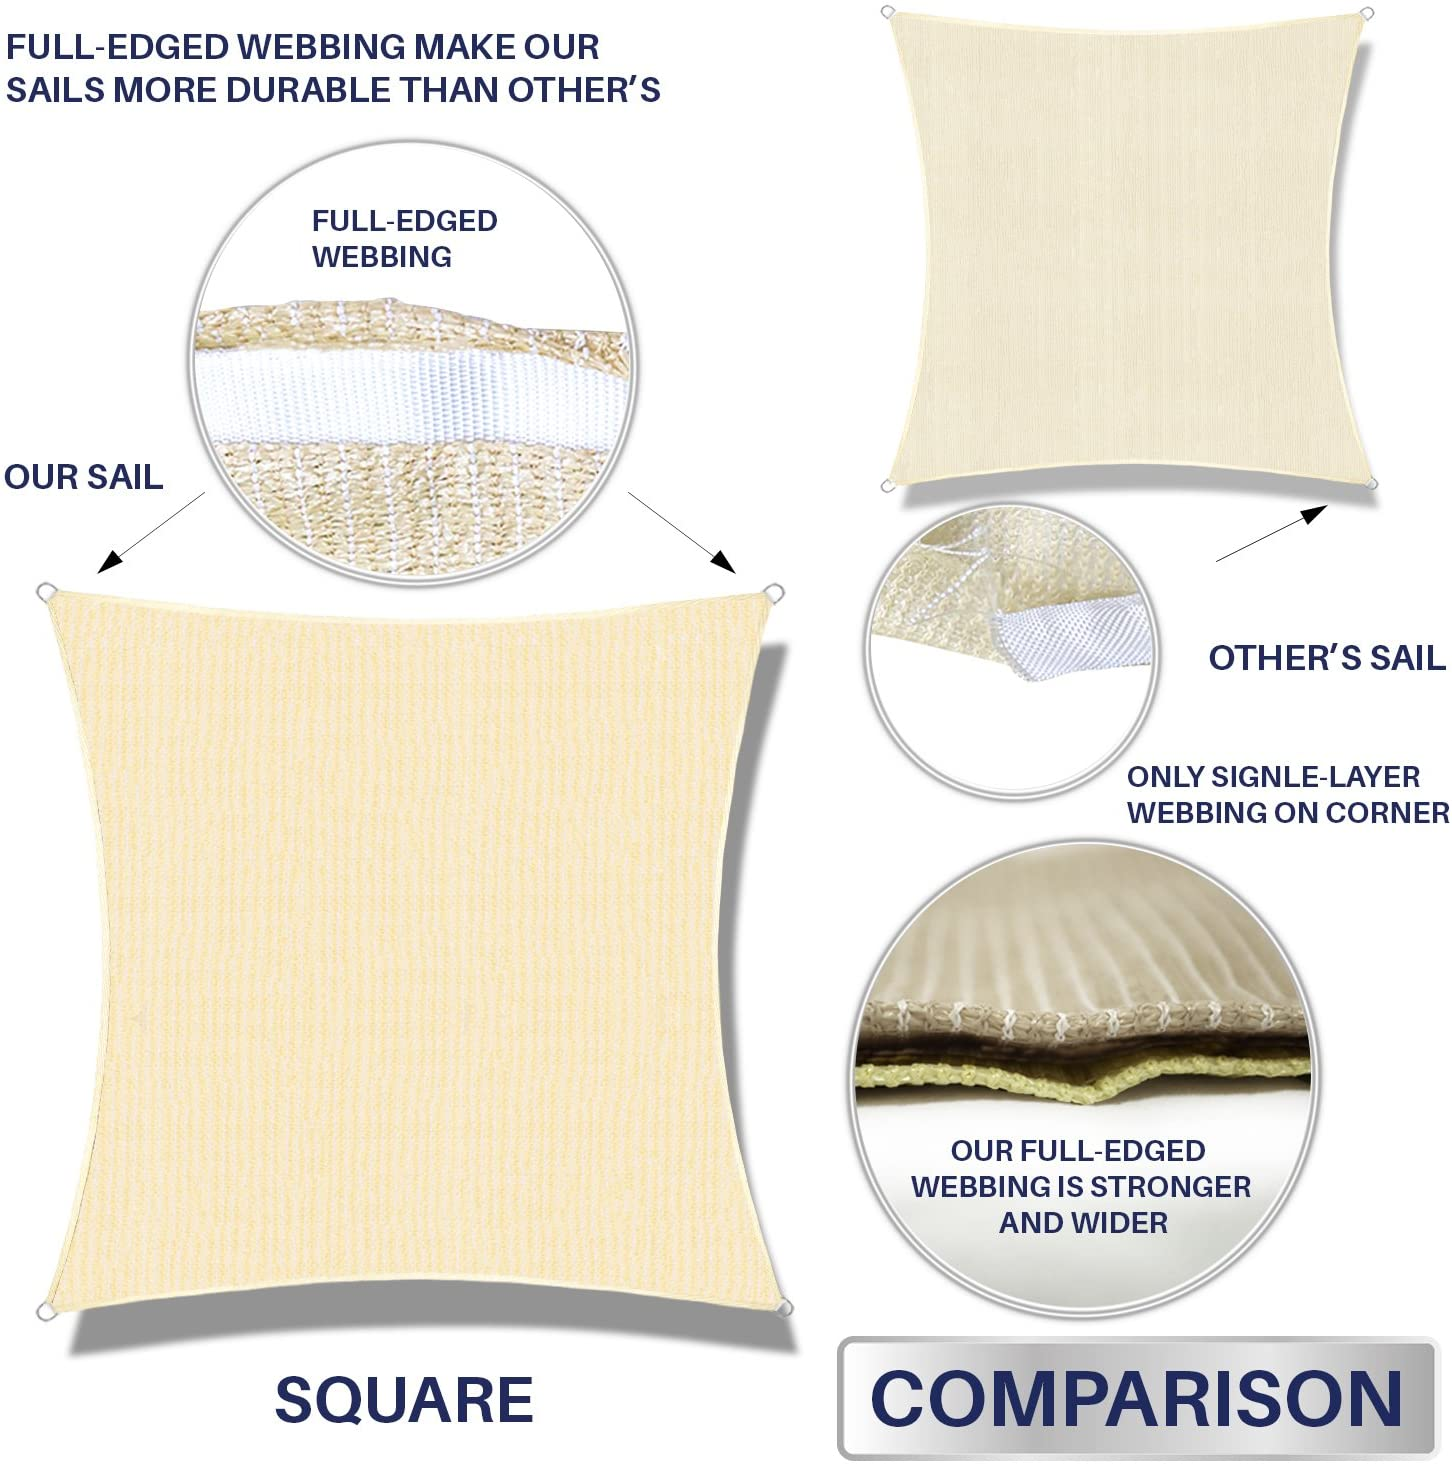 Custom Windscreen4less Sun Shade Sail for Outdoor Patio Backyard UV Block Awning with Steel D-Rings 10ft x 10ft Beige Sand Square